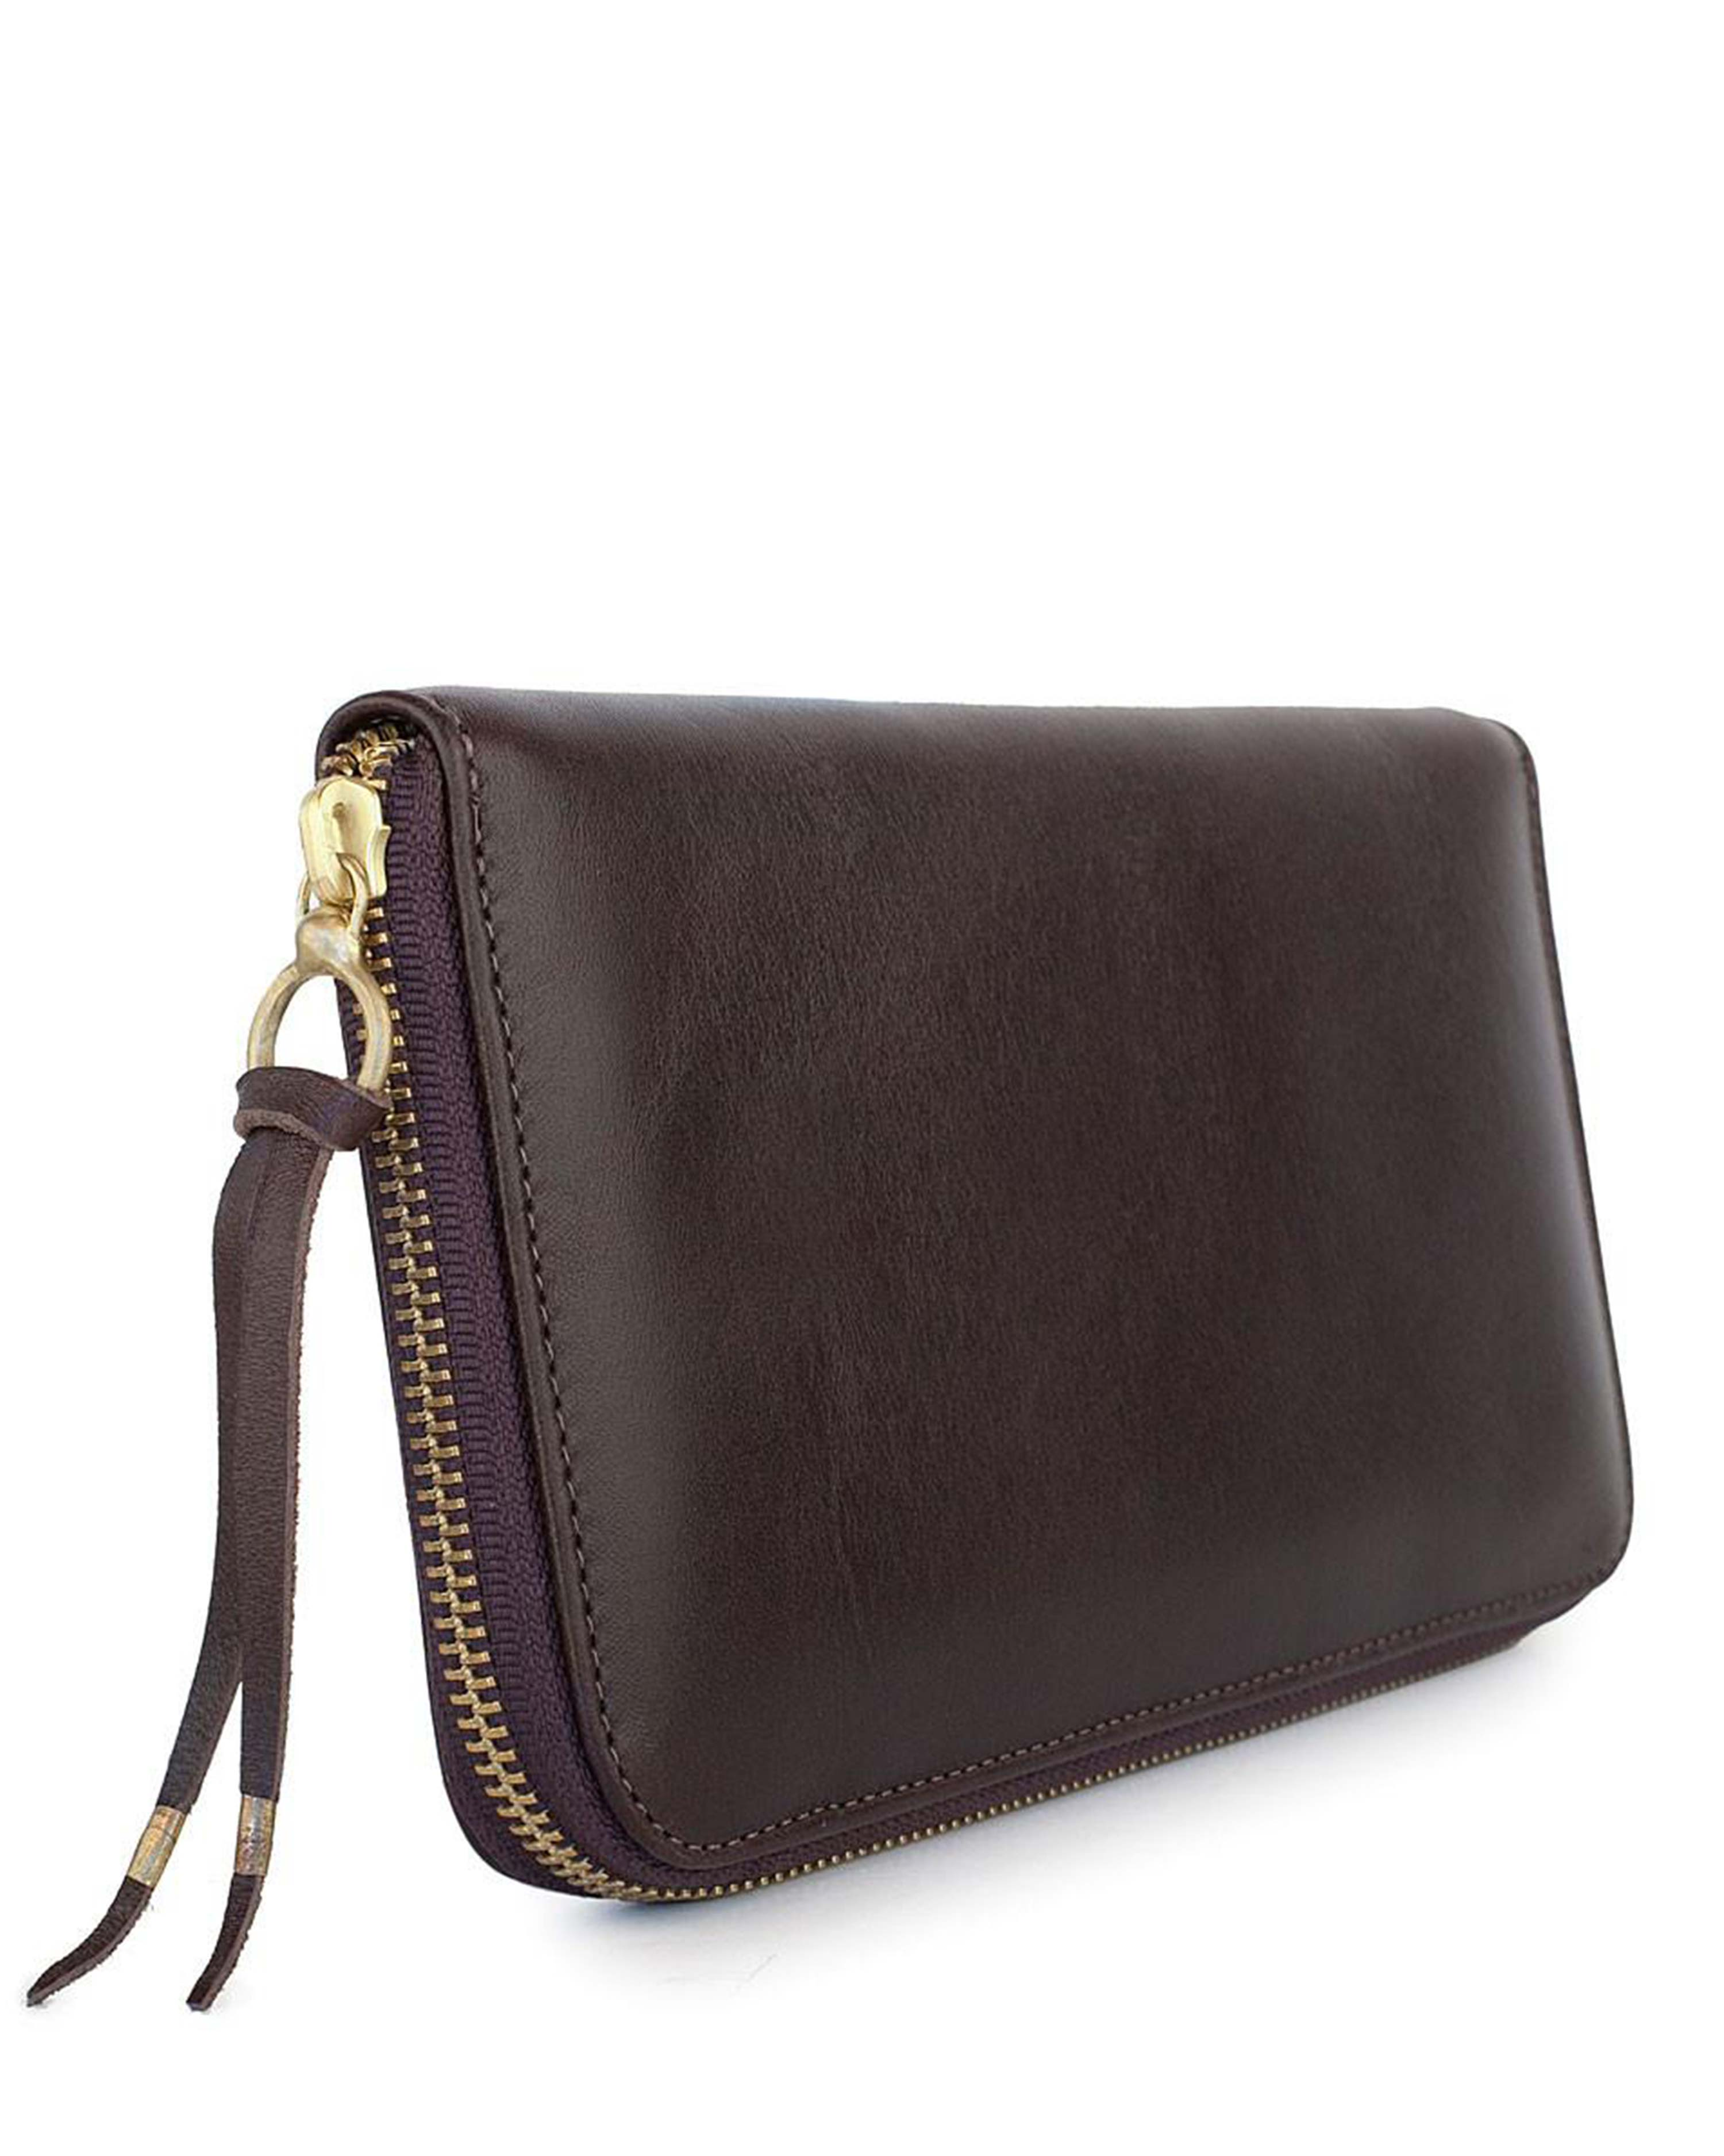 PASAPORTE in Chocolate Monte Carlo Leather